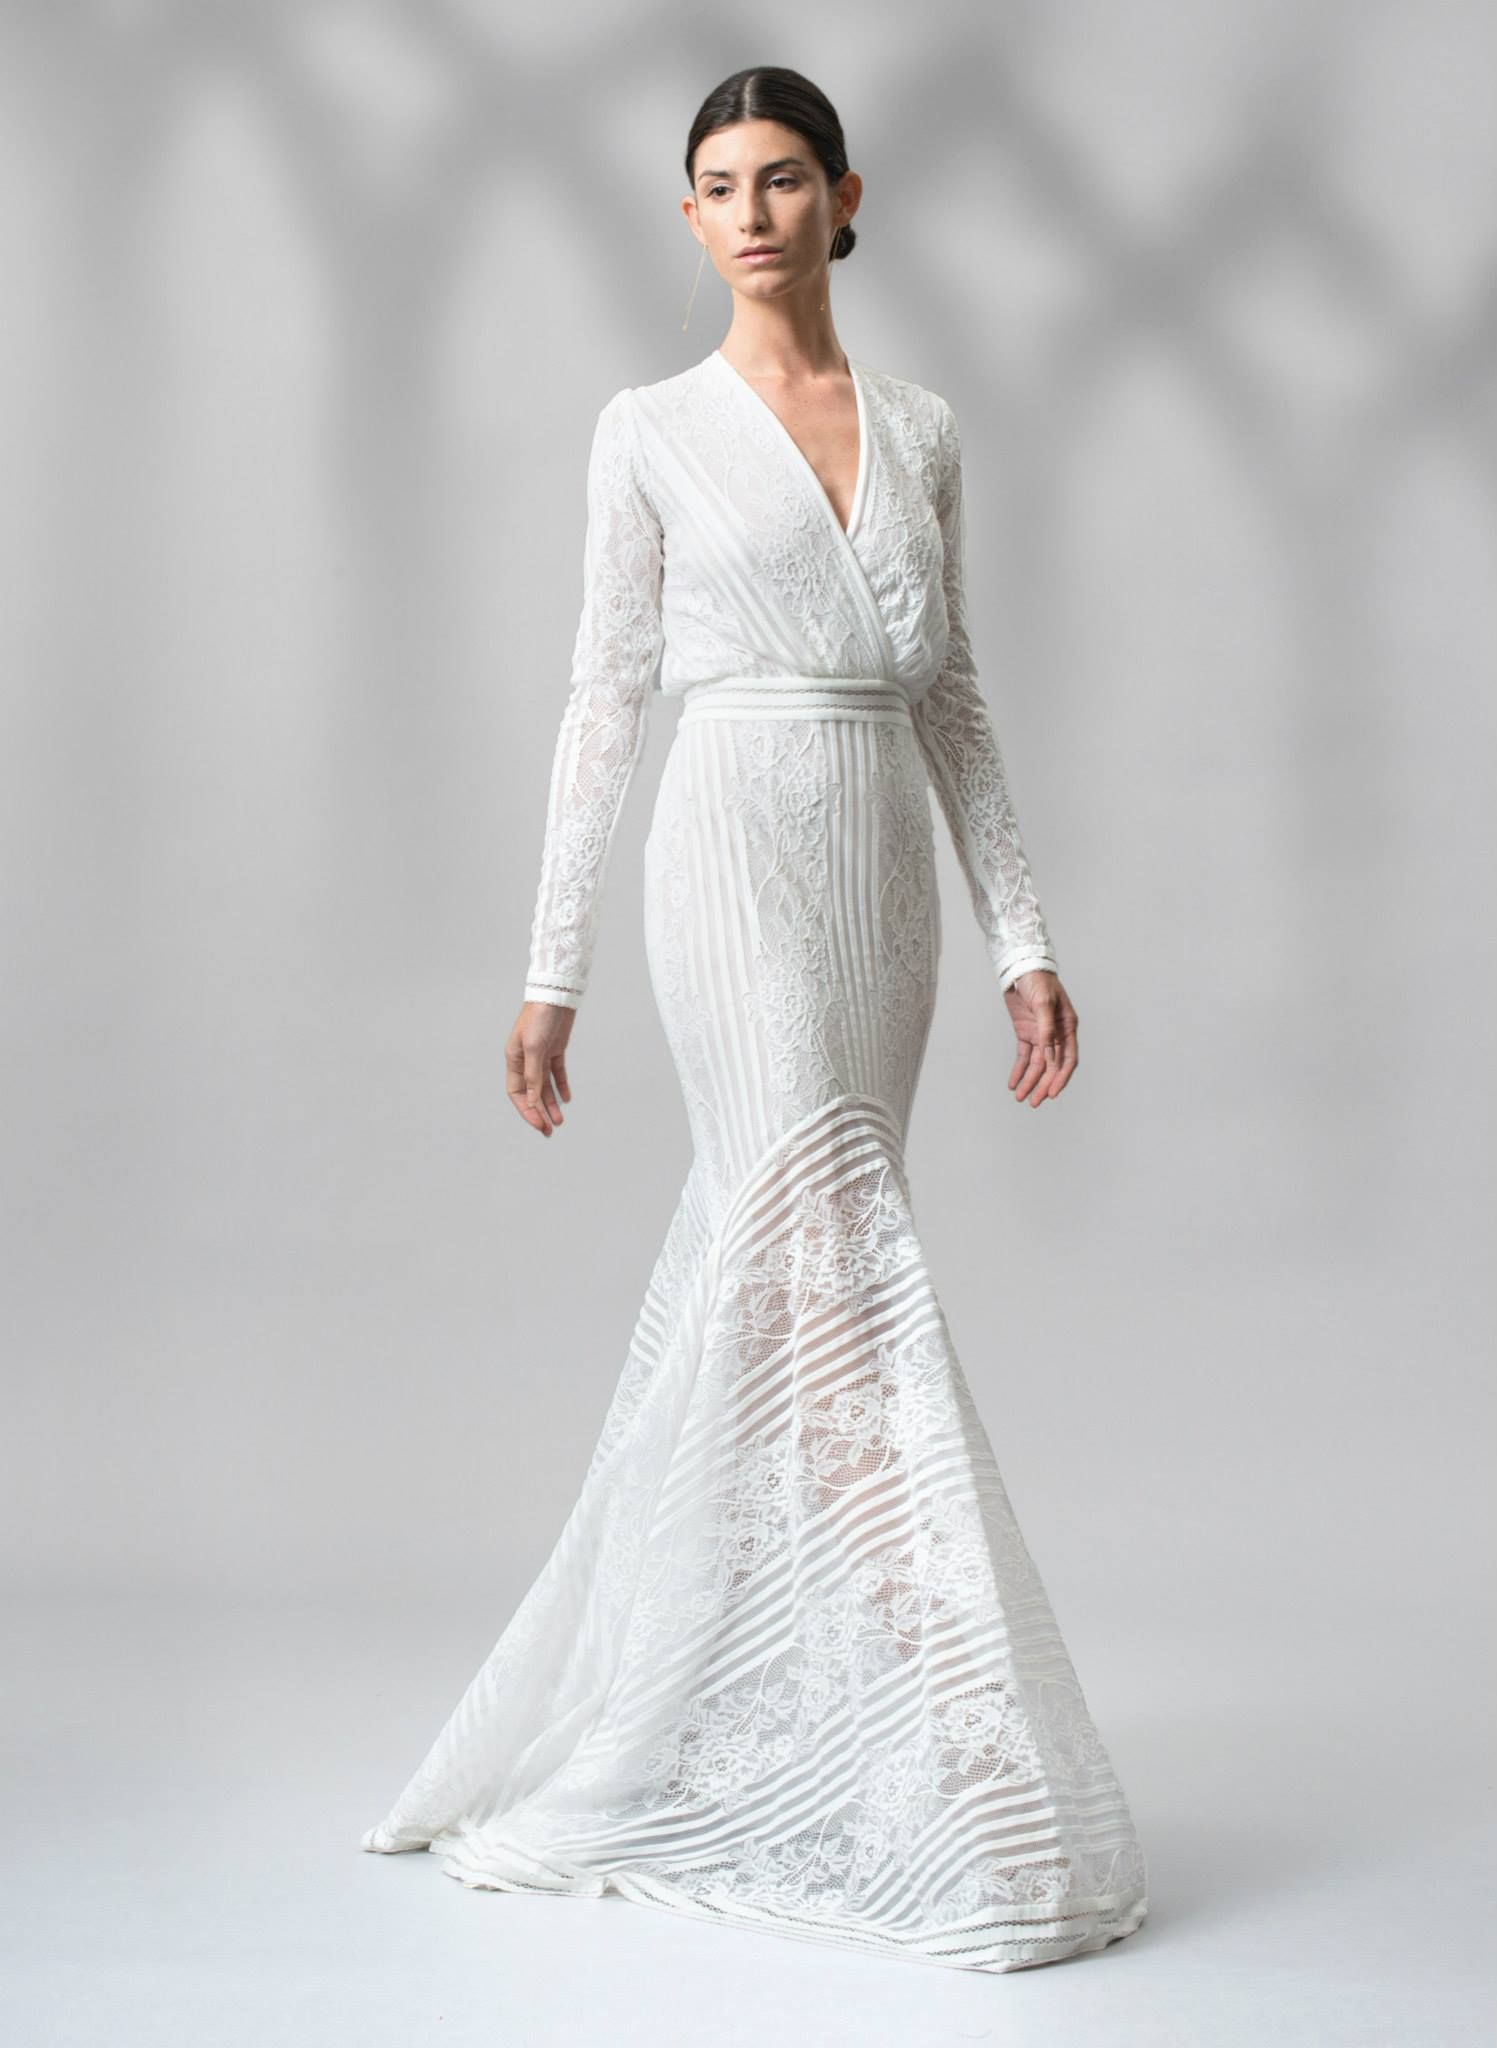 Merveilleux Tadashi Shoji Stripe Knit And Floral Lace Long Sleeve Gown Style Wedding  Dress